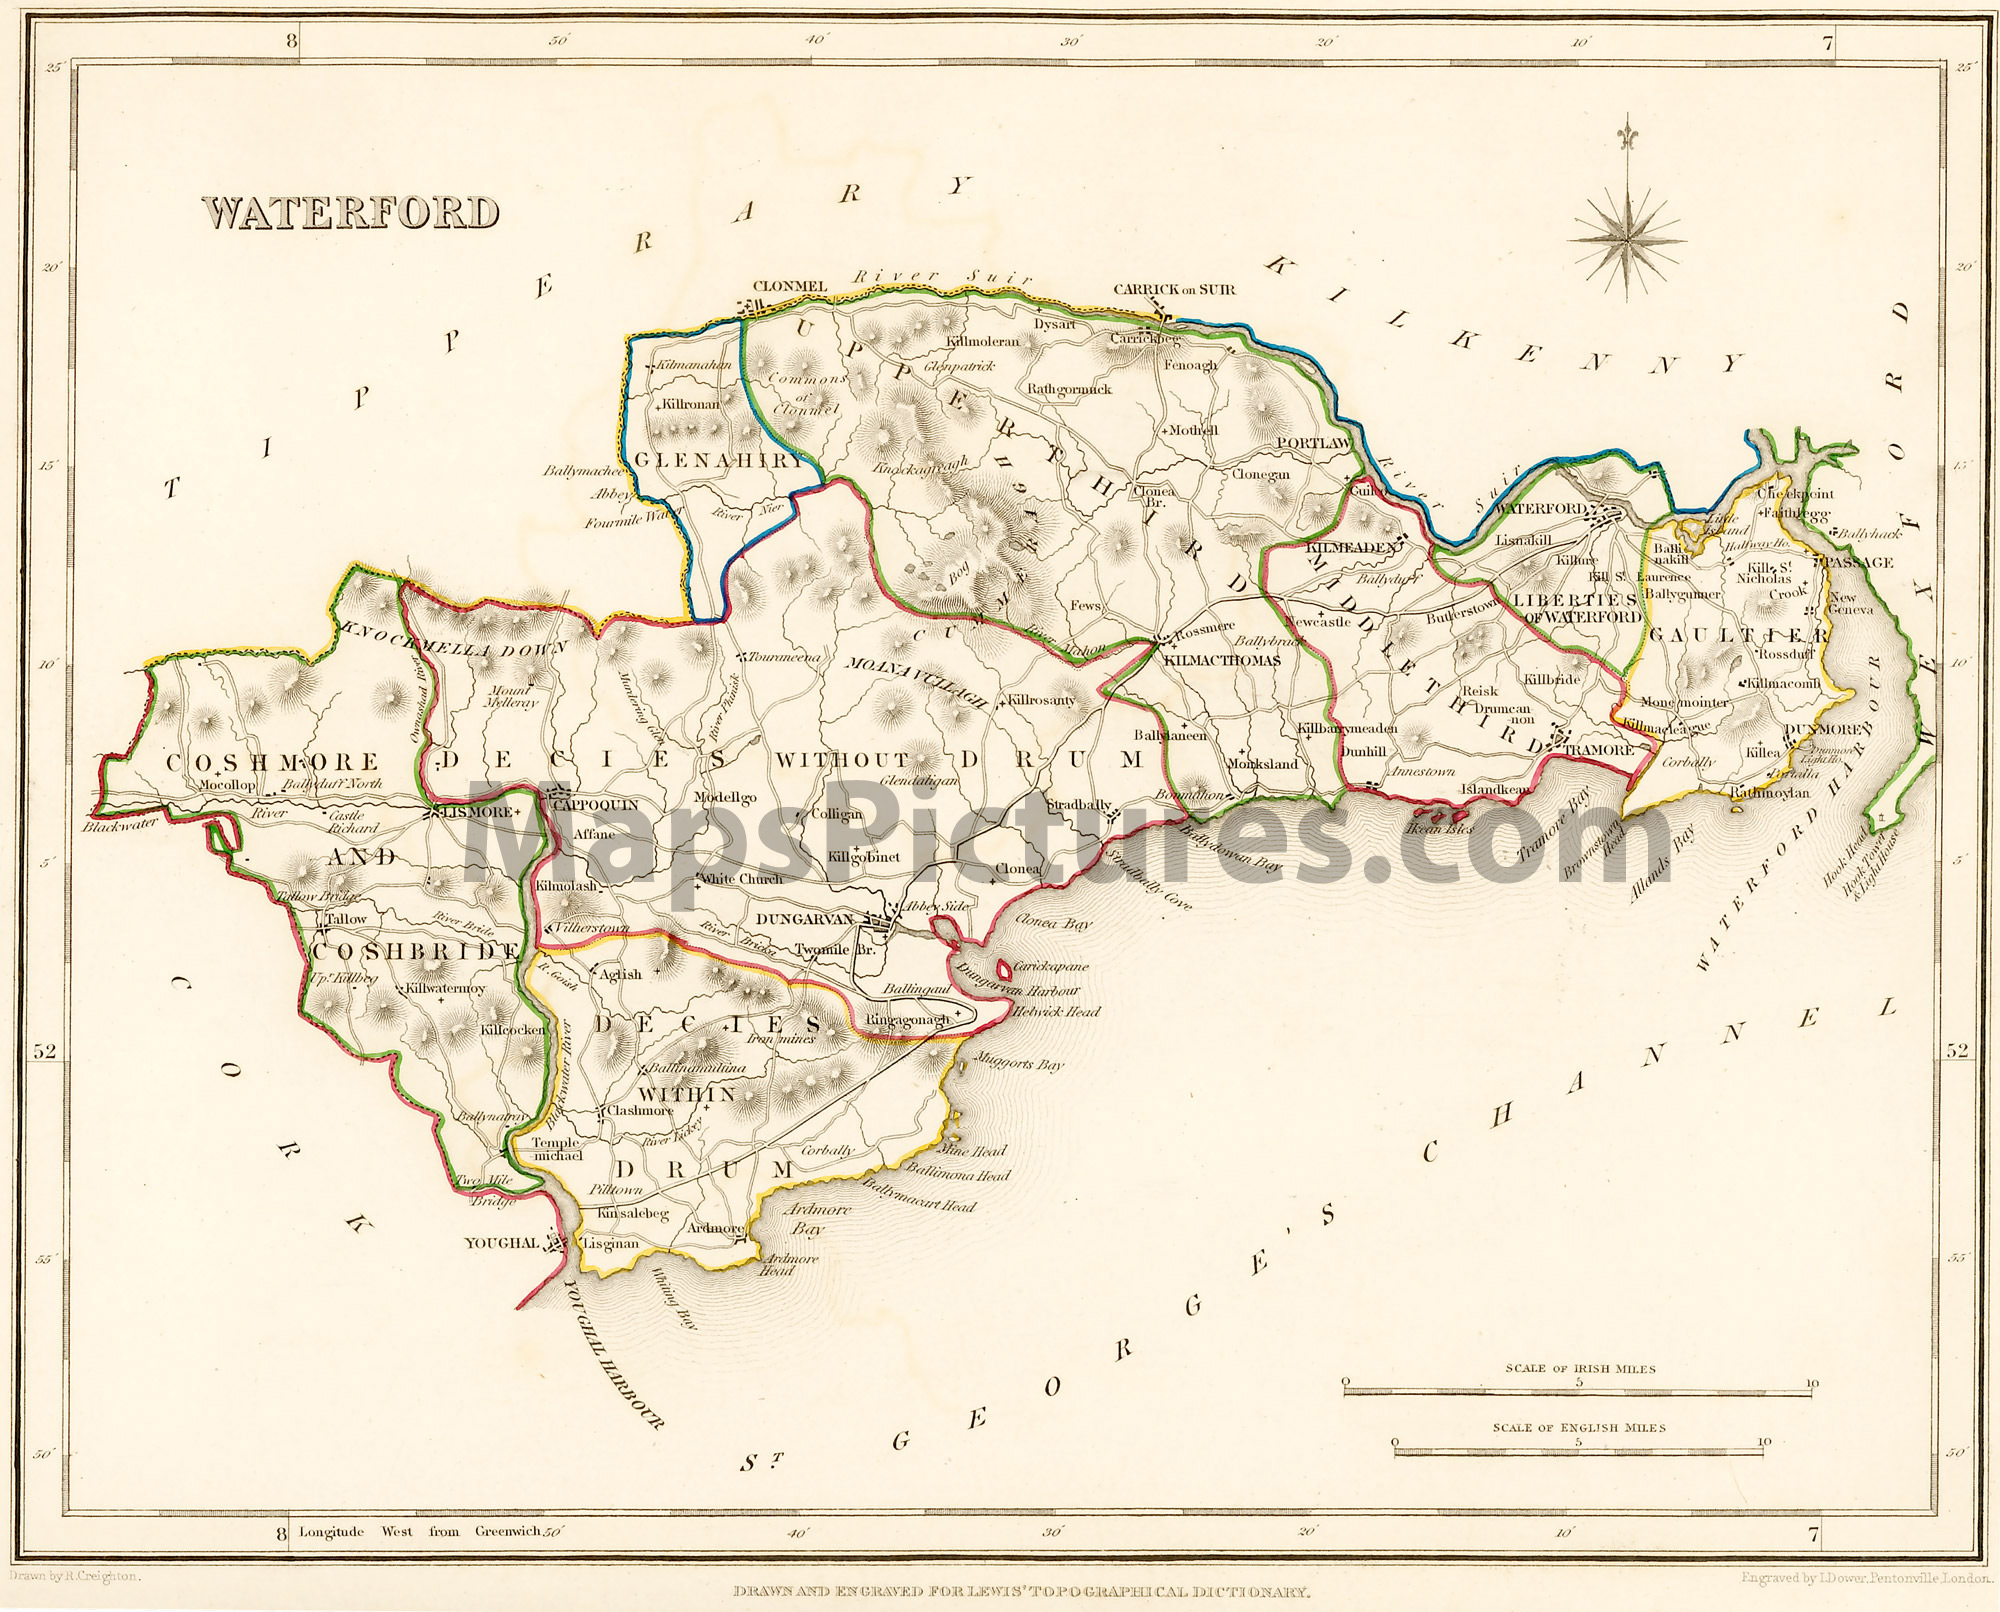 Map Of Waterford Ireland.County Waterford Ireland Map 1837